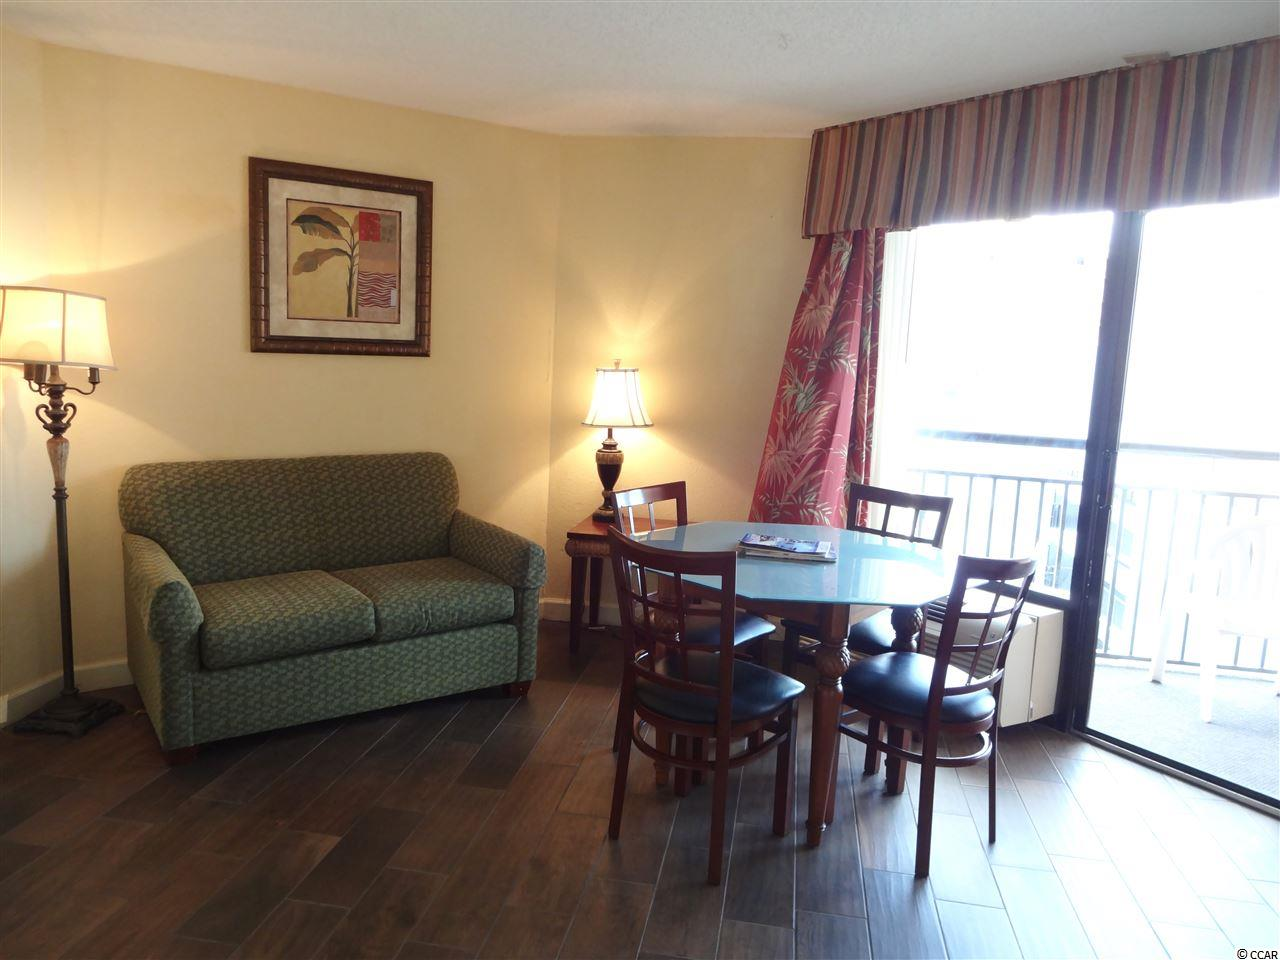 Monterey Bay Suites Resort condo for sale in Myrtle Beach, SC